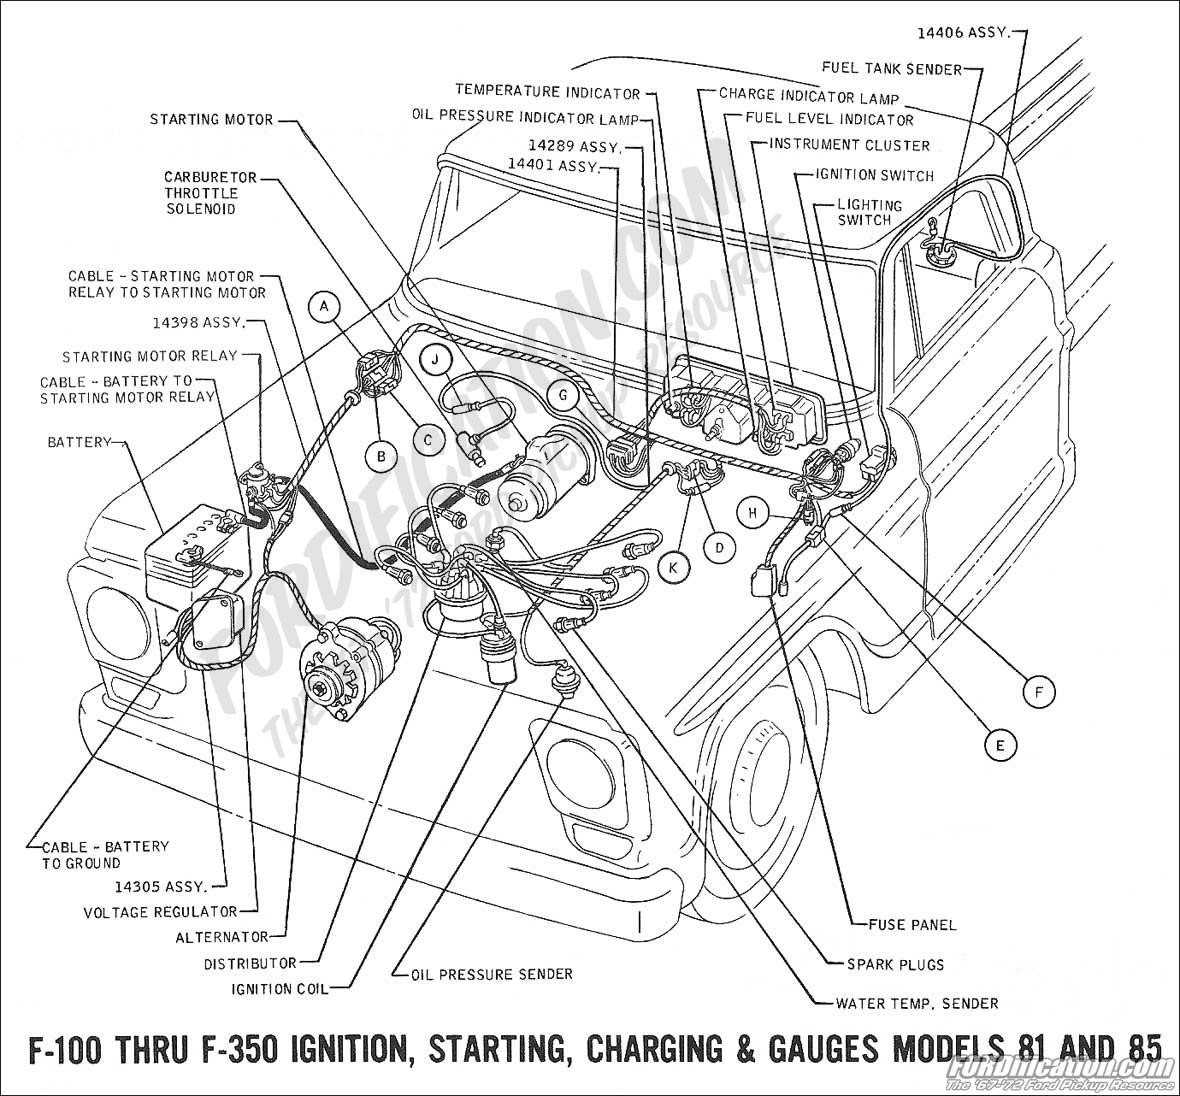 wiring 1969charging ford truck technical drawings and schematics section h wiring 1976 ford f100 wiring diagram at panicattacktreatment.co